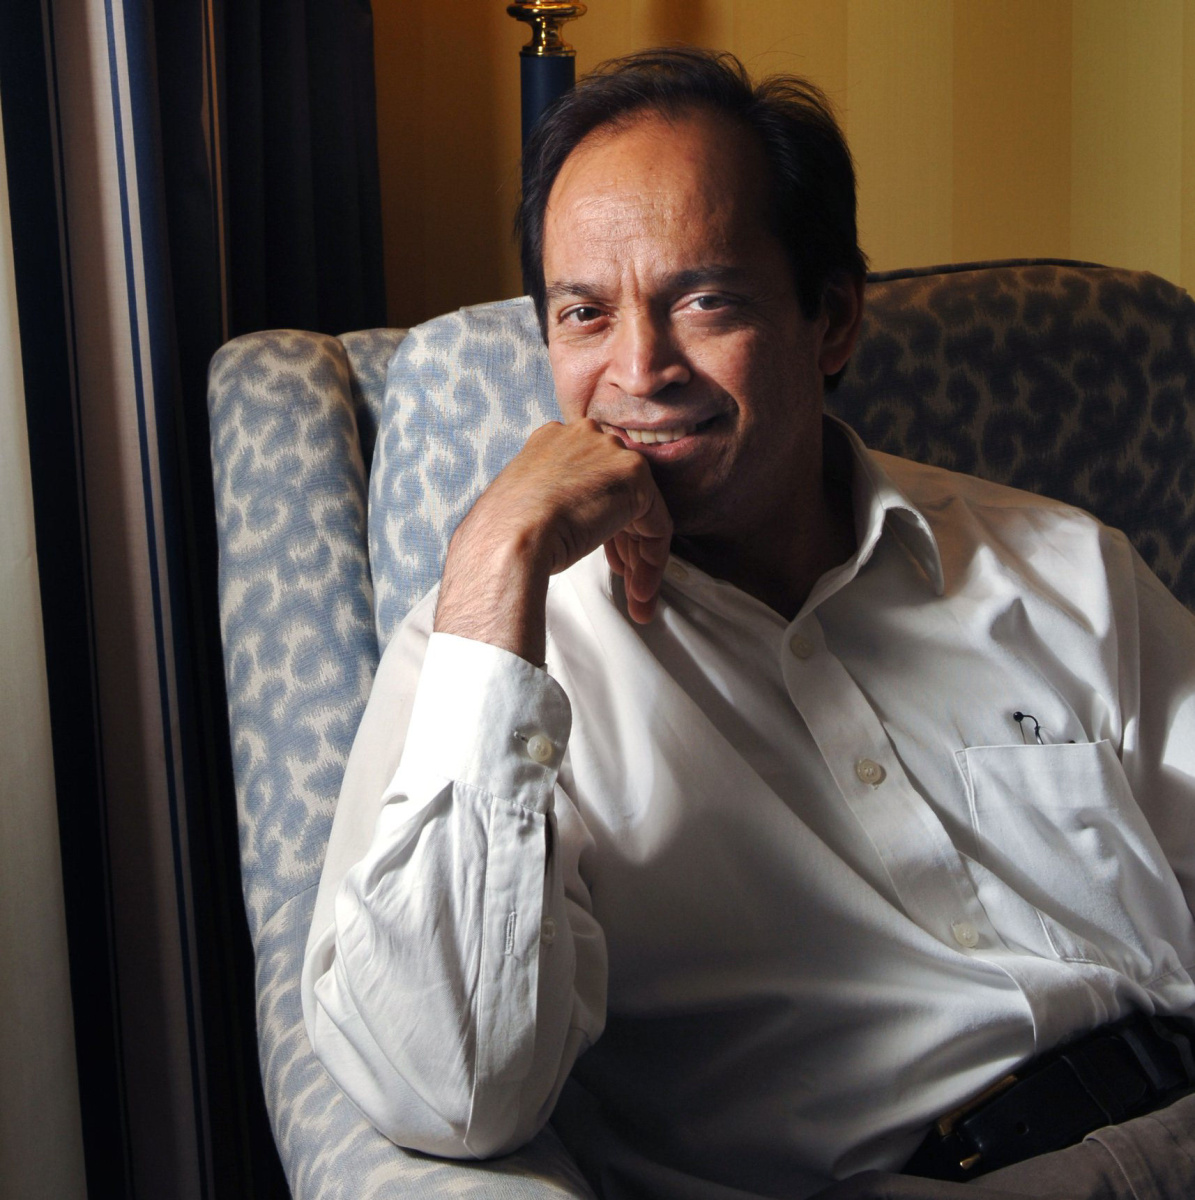 vikram seth Vikram seth cbe (born 20 june 1952) is an indian novelist and poethe has written several novels and poetry books he has received several awards including padma shri, sahitya academy award, pravasi bharatiya samman, wh smith literary award and crossword book awardseth's collections of poetry such as mappings and beastly tales are notable.